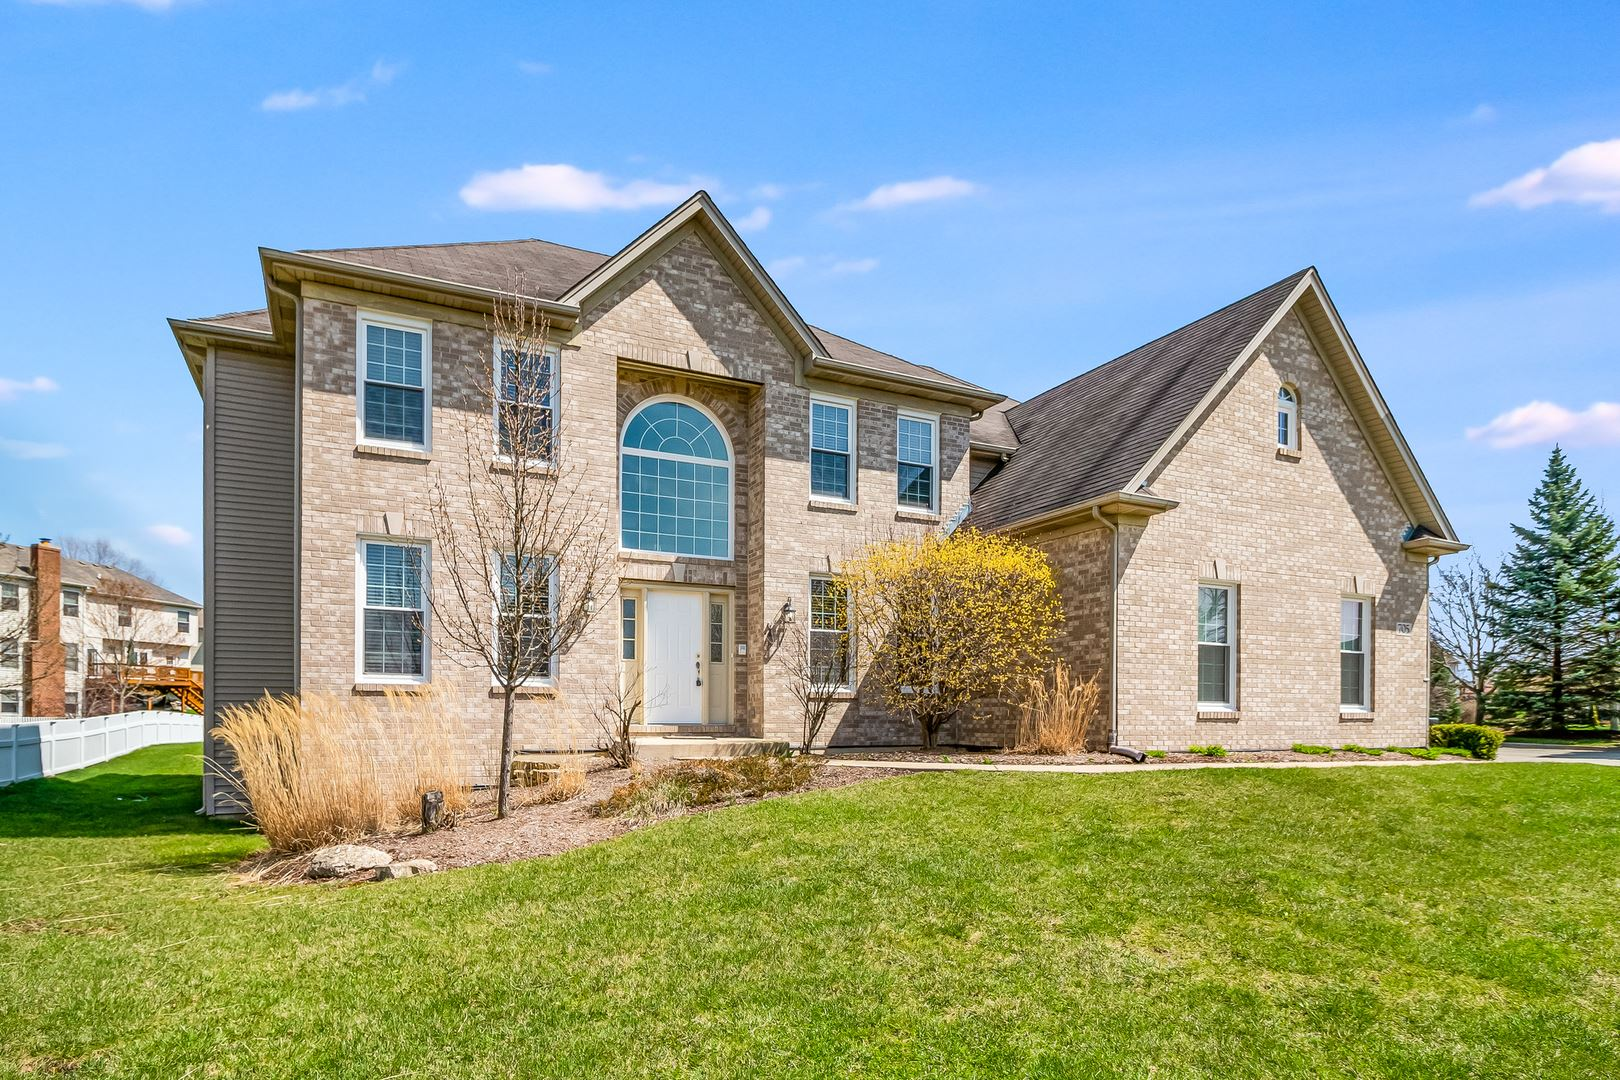 705 KATELAND Way, South Elgin, IL 60177 - #: 10695900